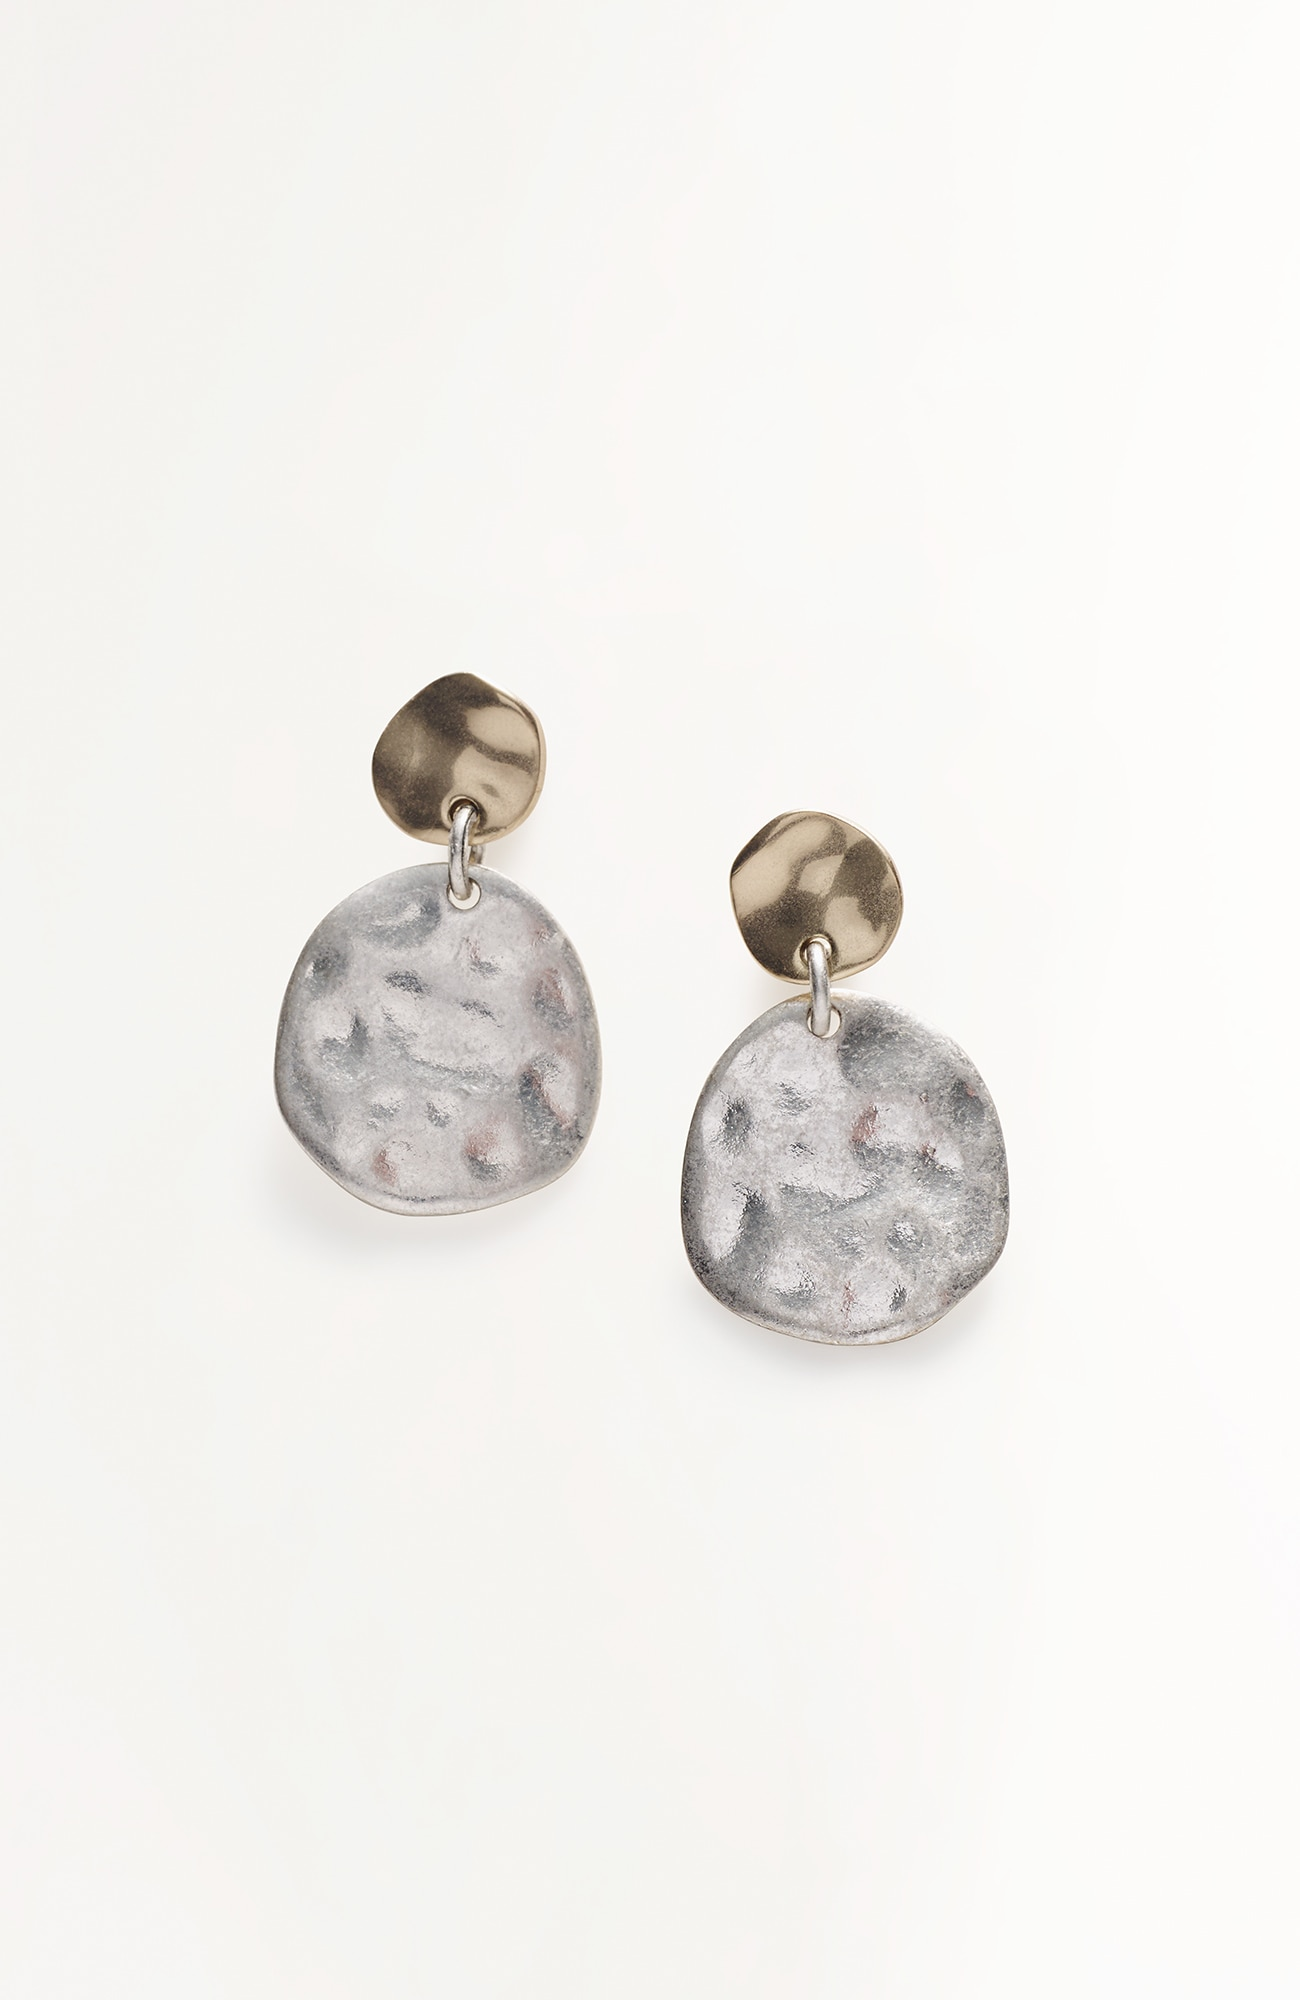 mixed-metal disk earrings